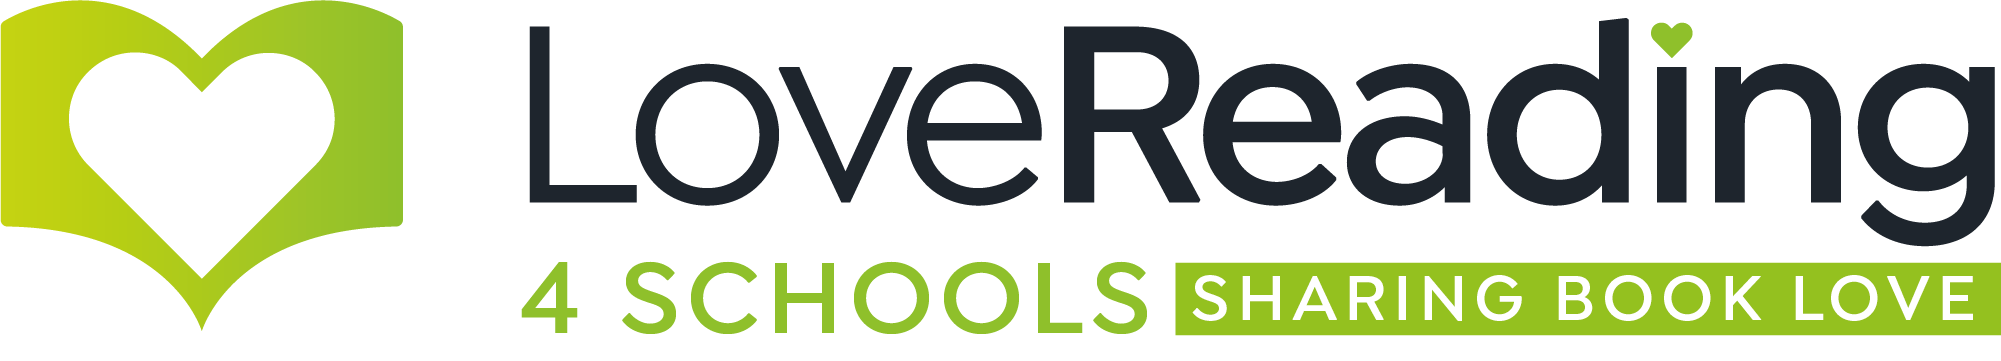 LoveReading4Schools logo